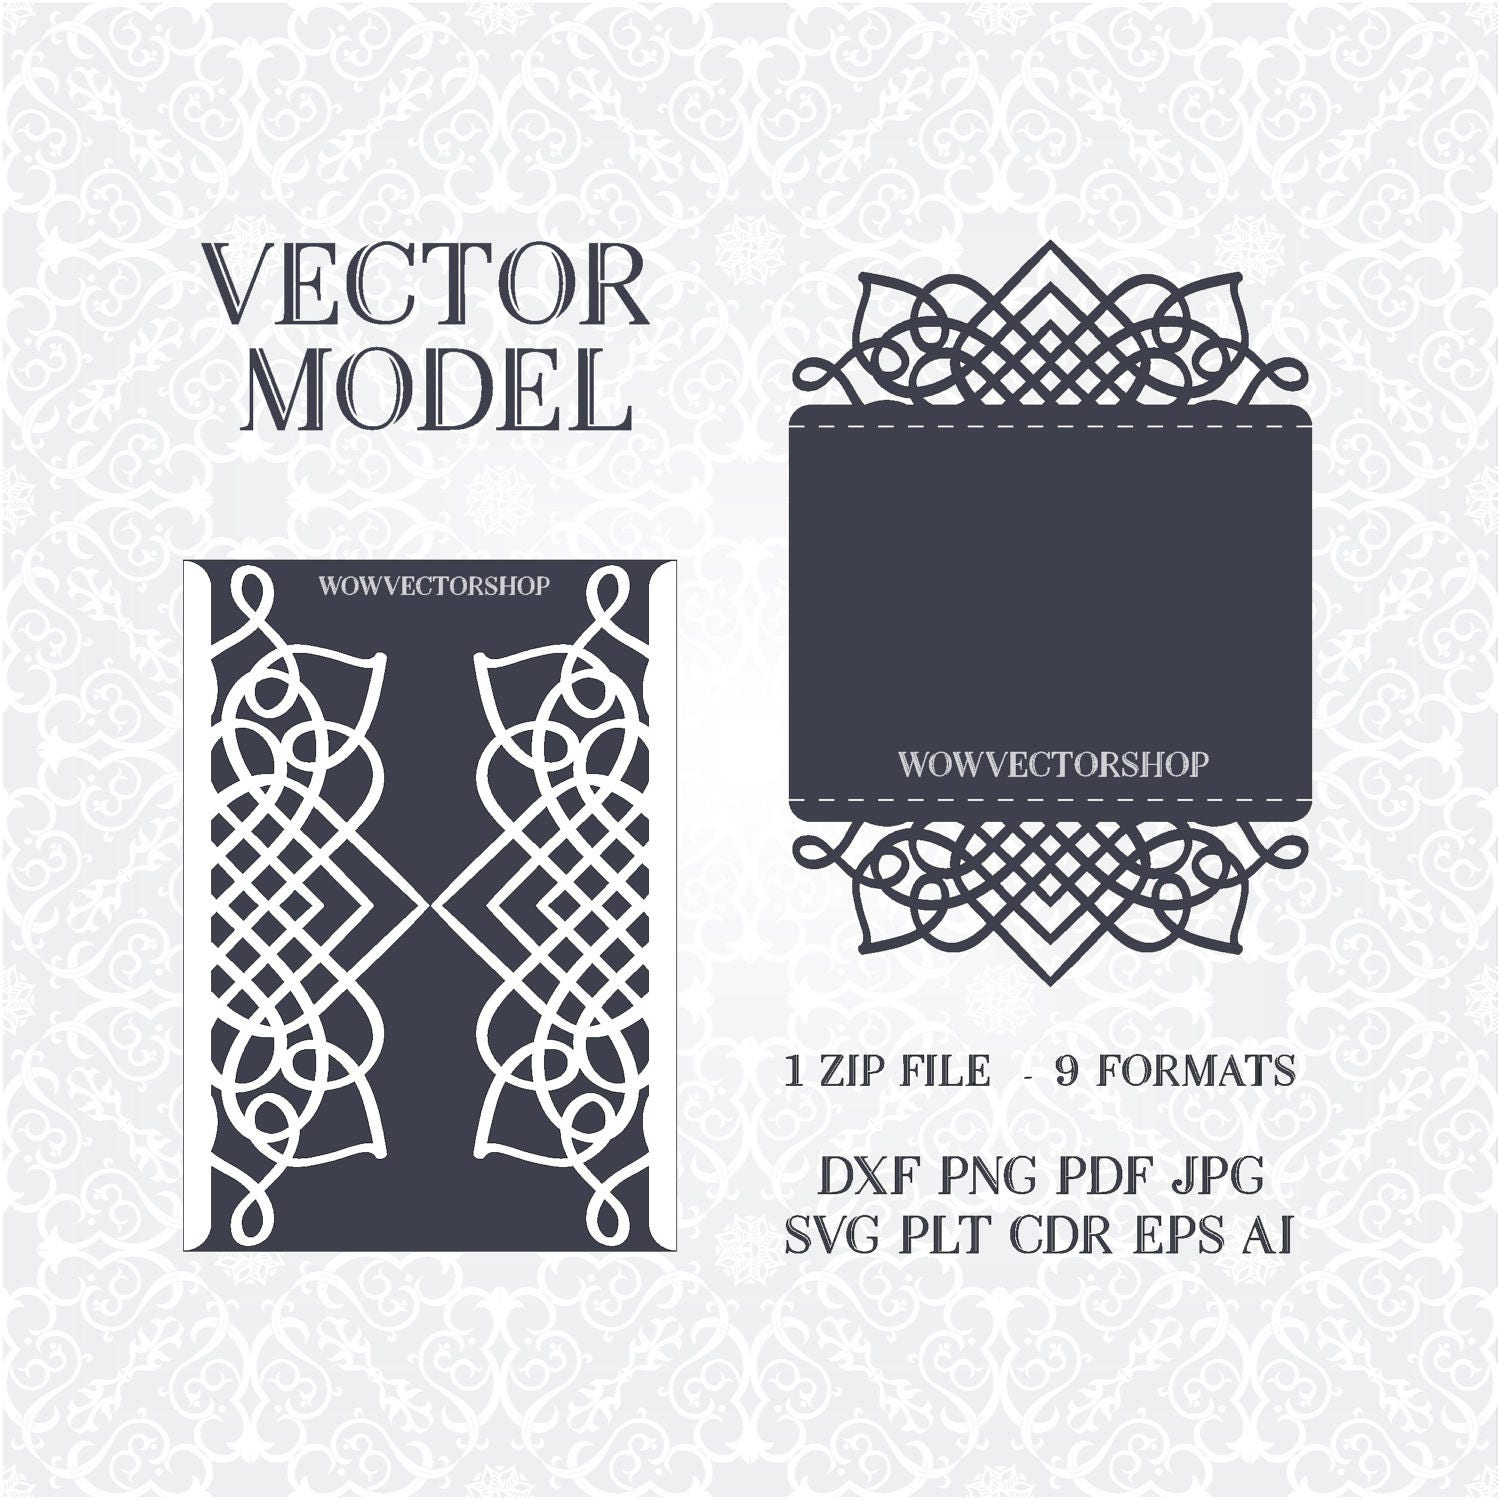 Laser cut Envelope Template for wedding invitation or greeting | Etsy